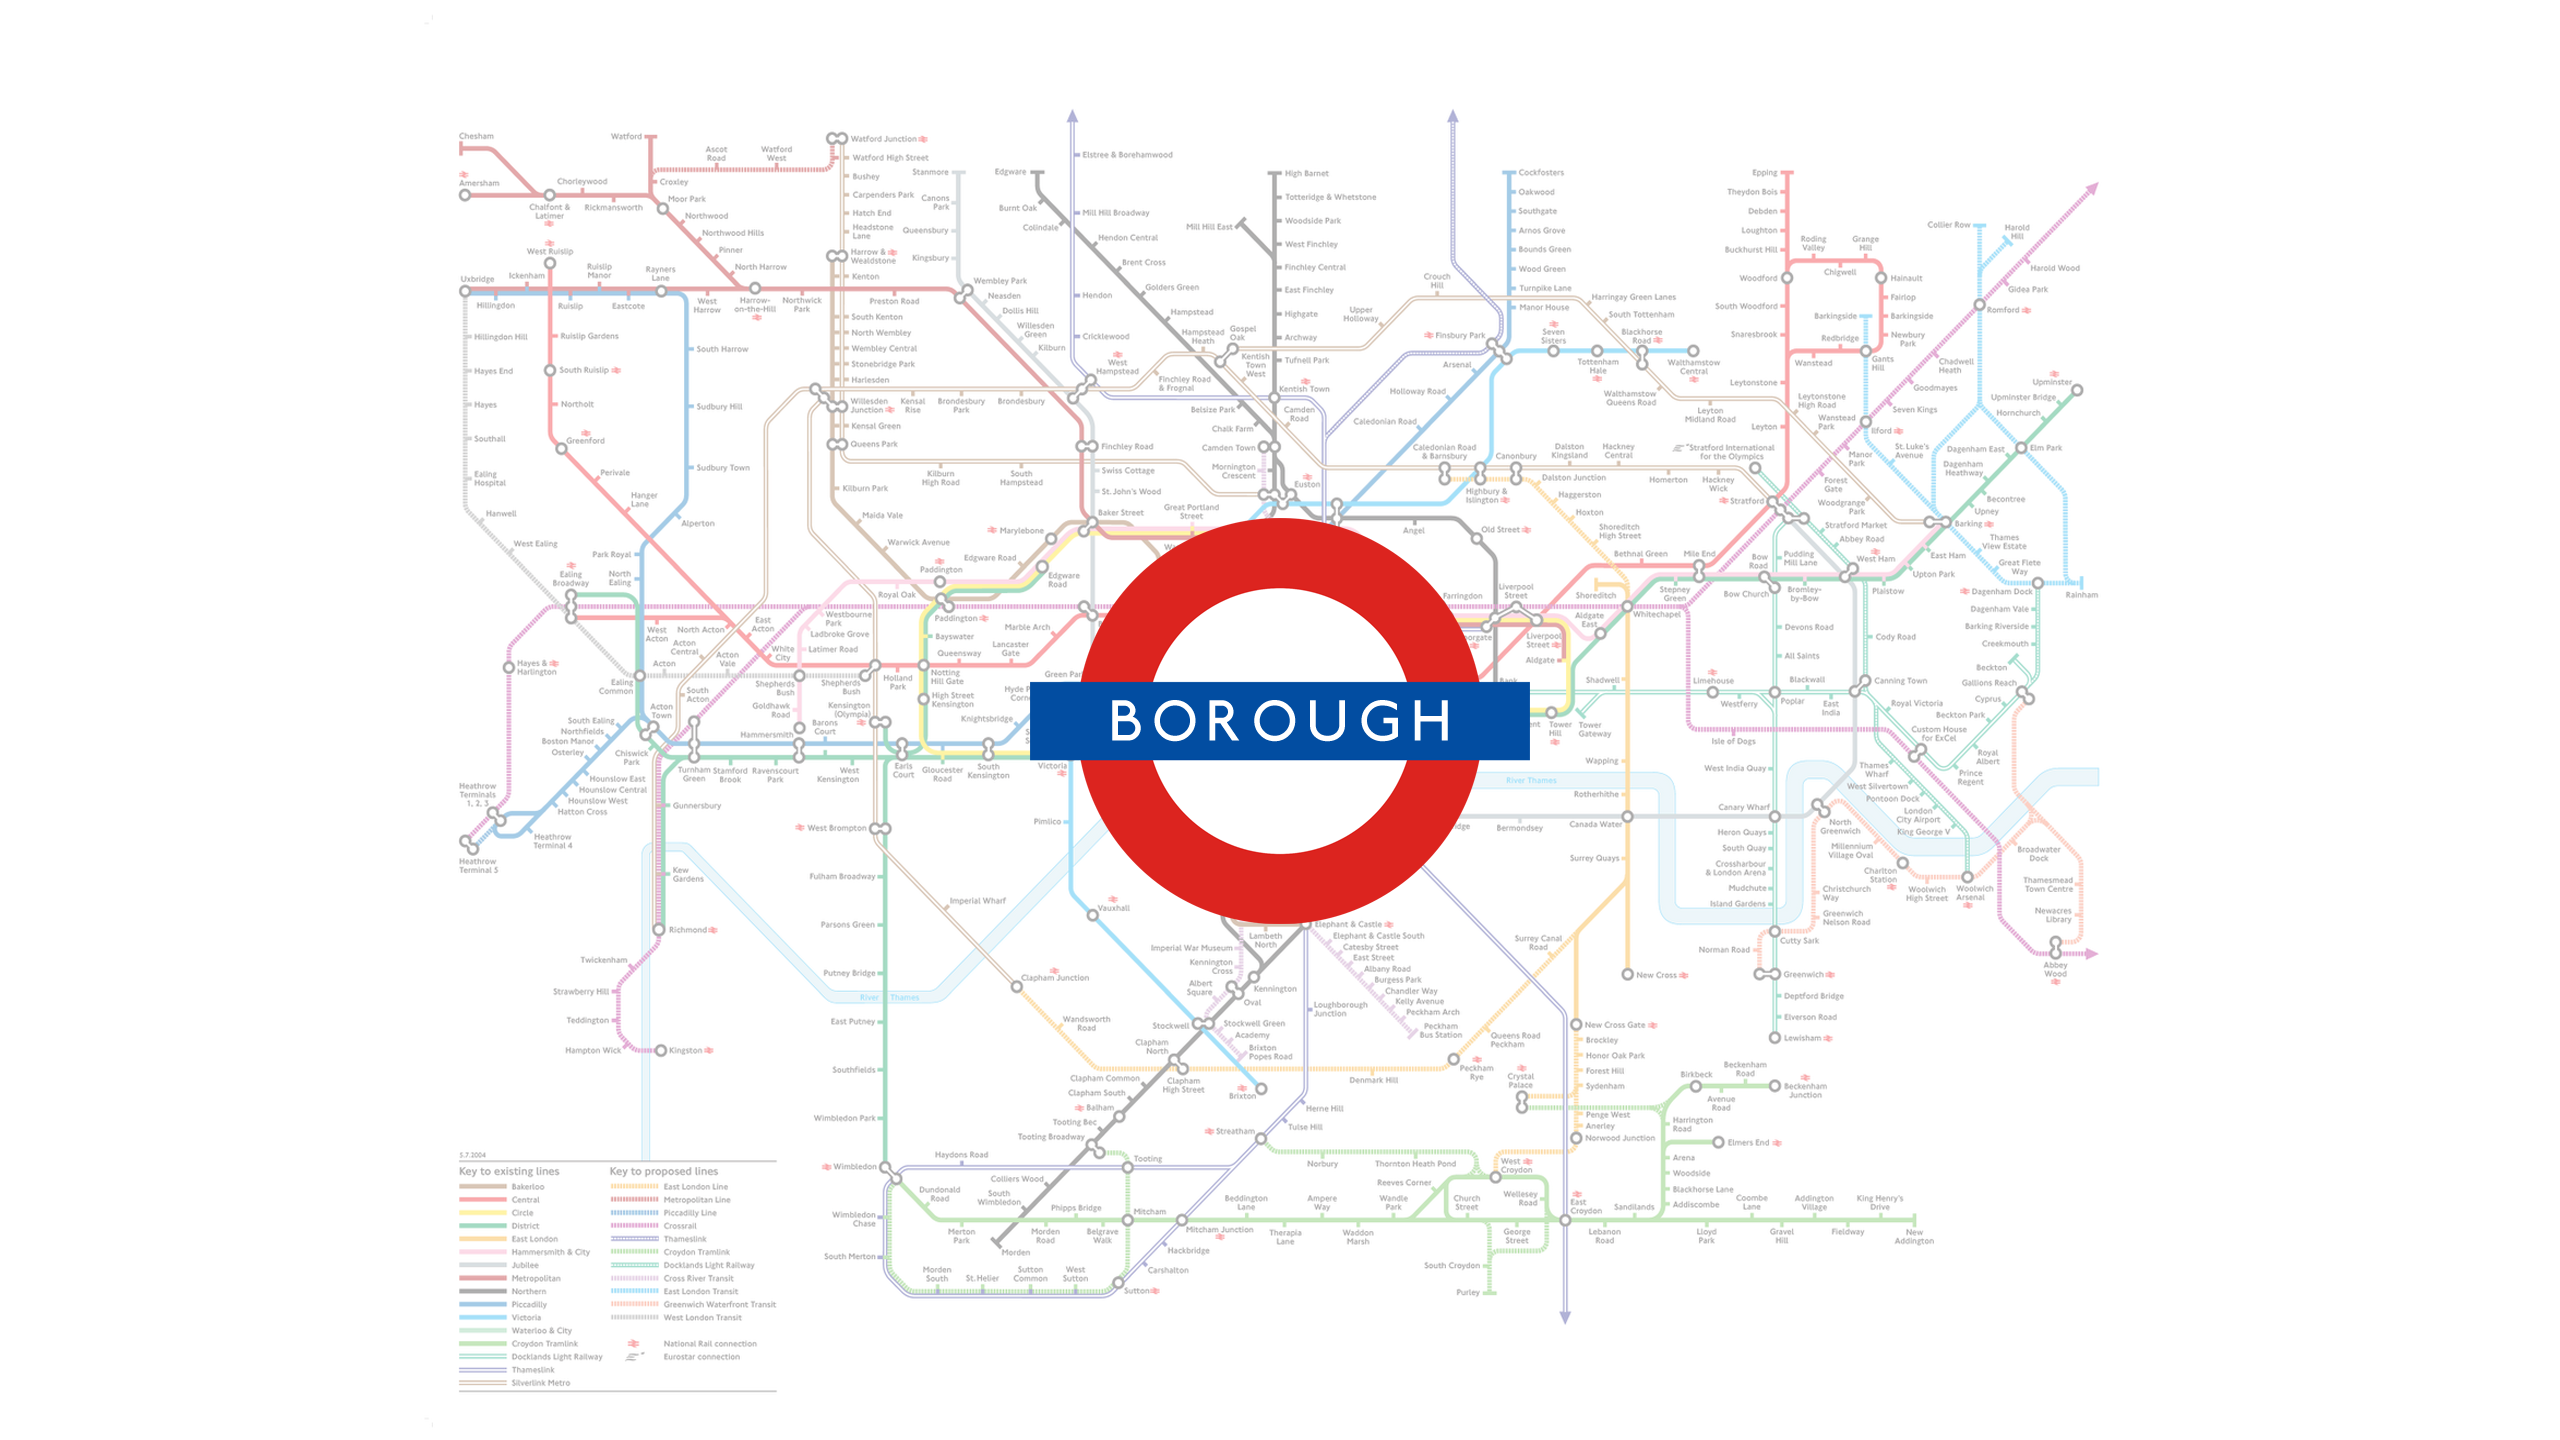 Borough (Map)